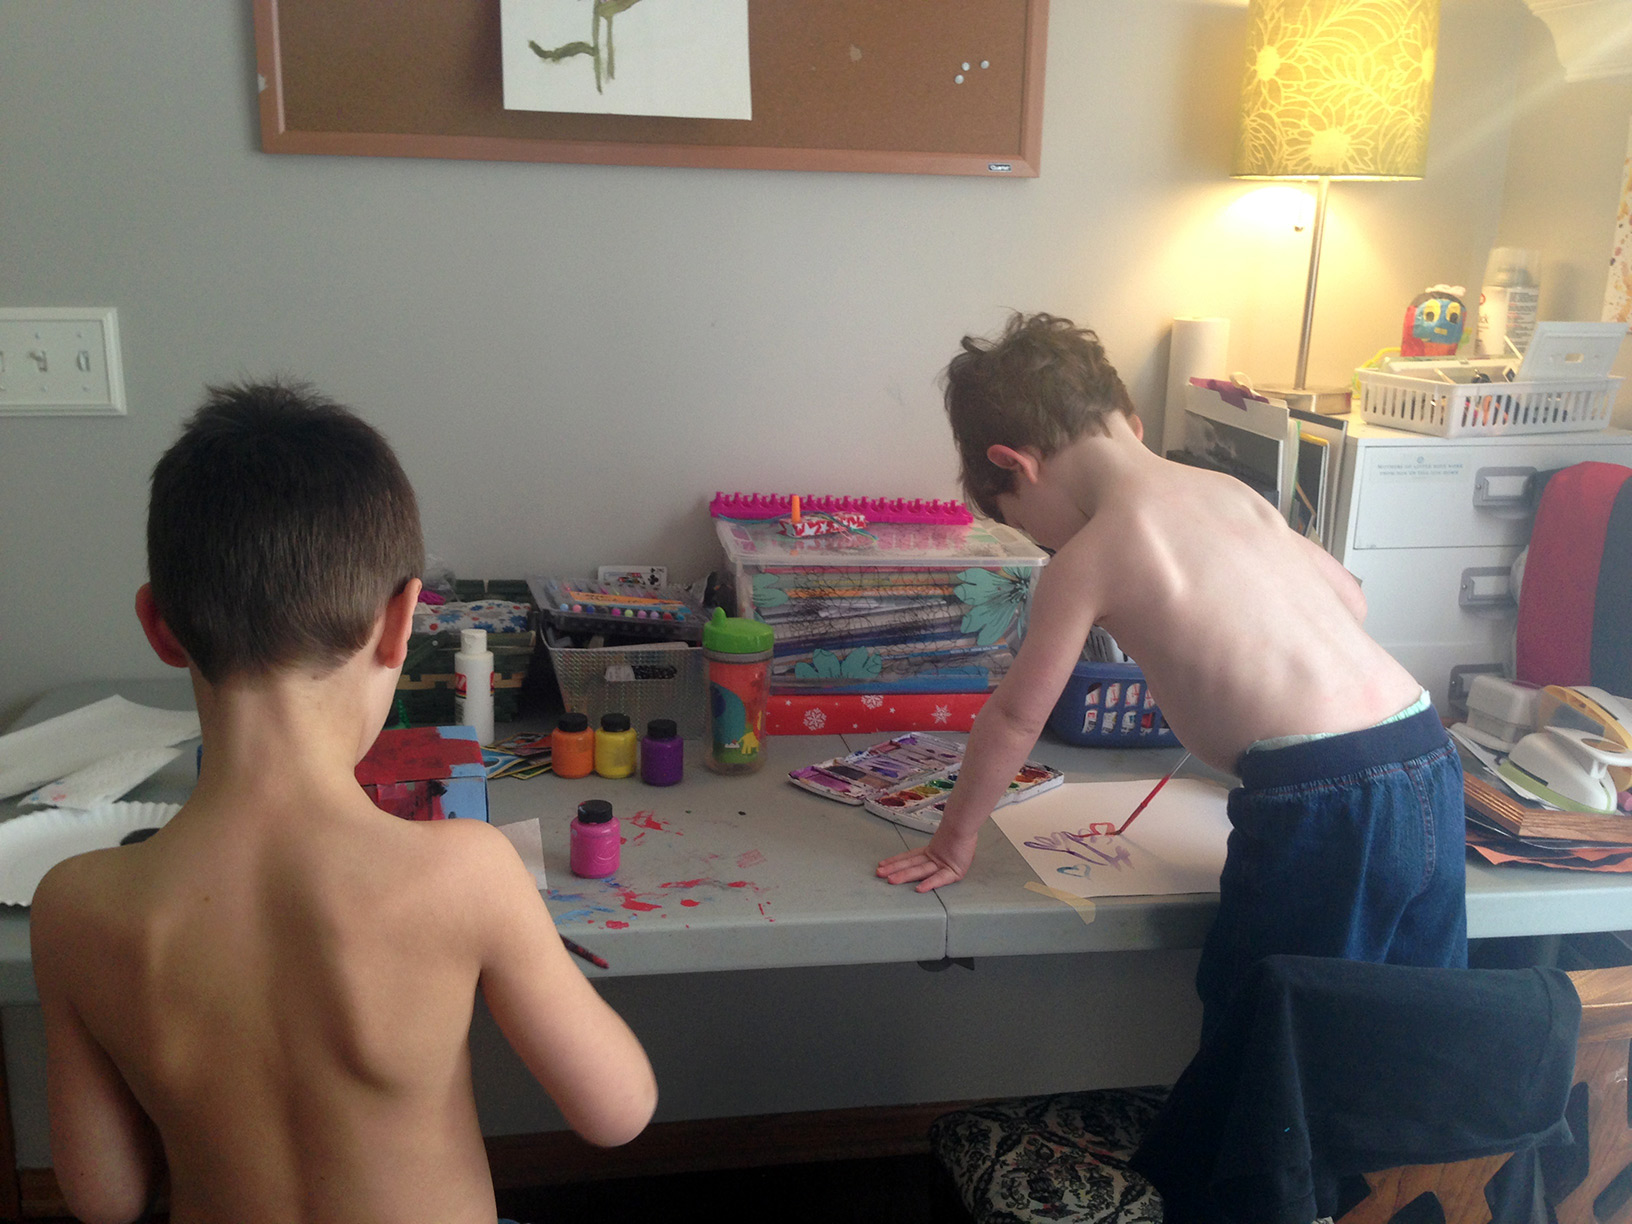 The brother's painting. Of course, little brother had to take his shirt off like big brother.